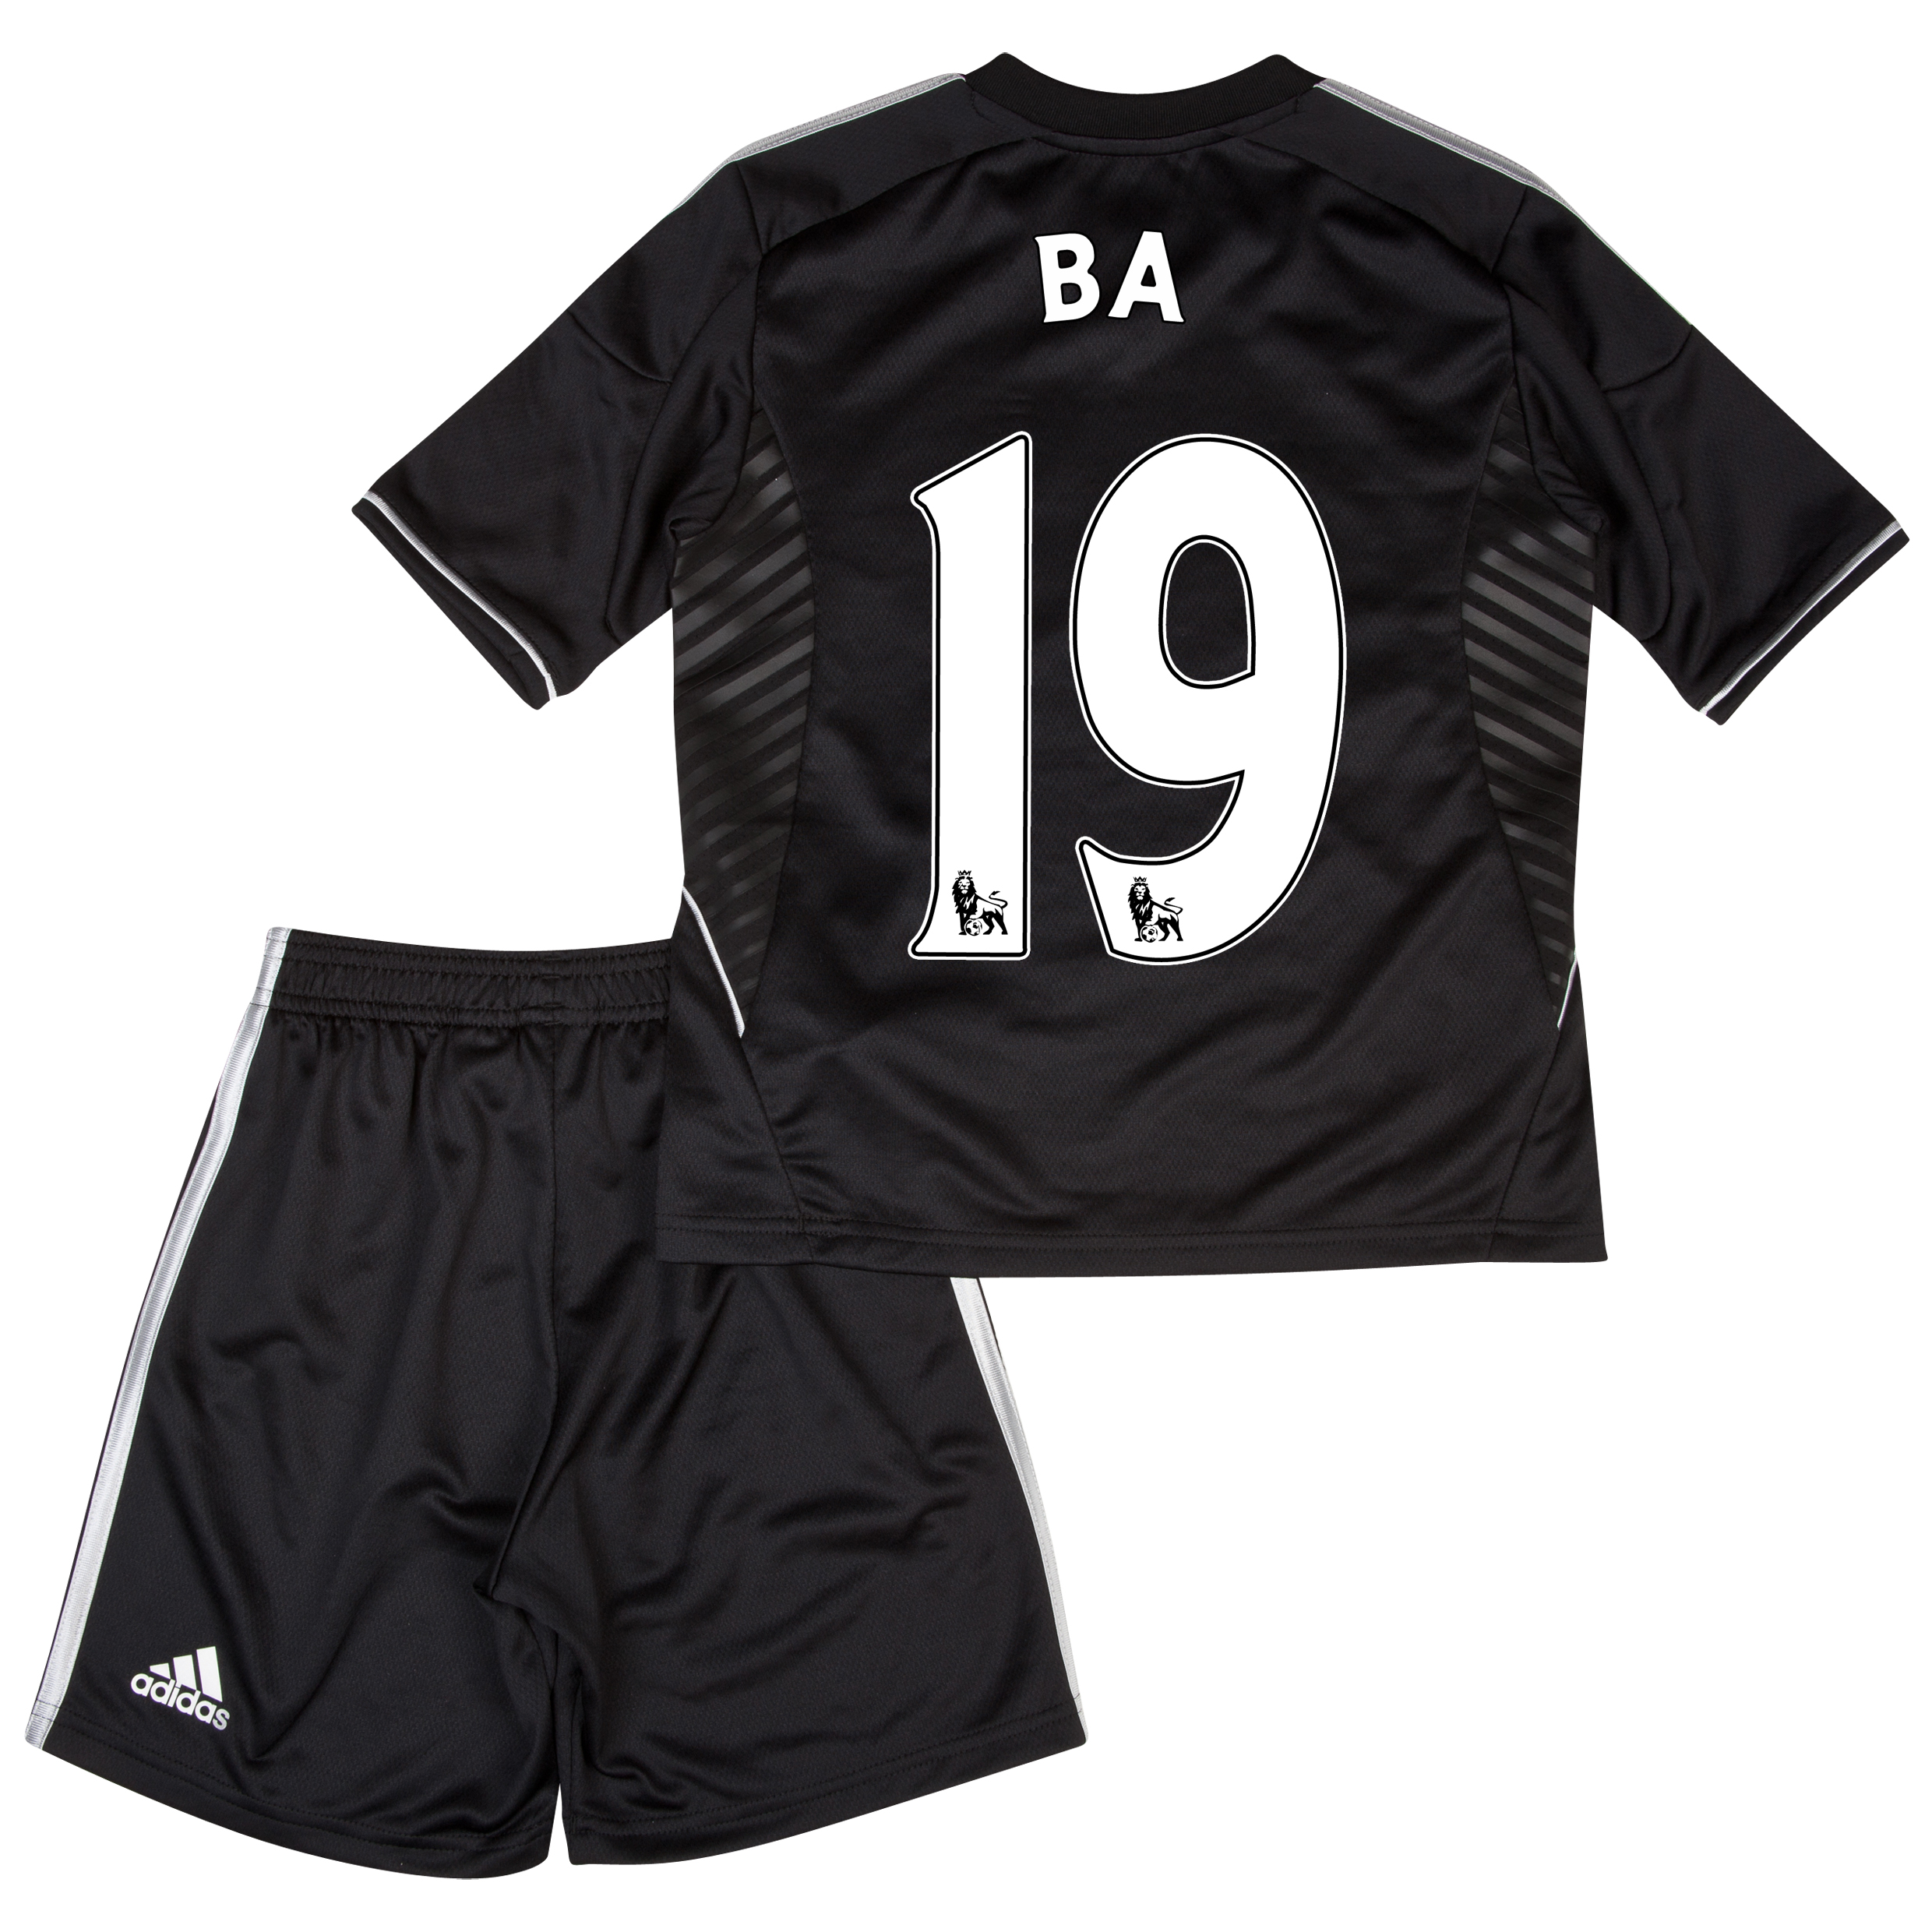 Chelsea Third Mini Kit 2013/14 with Ba 19 printing